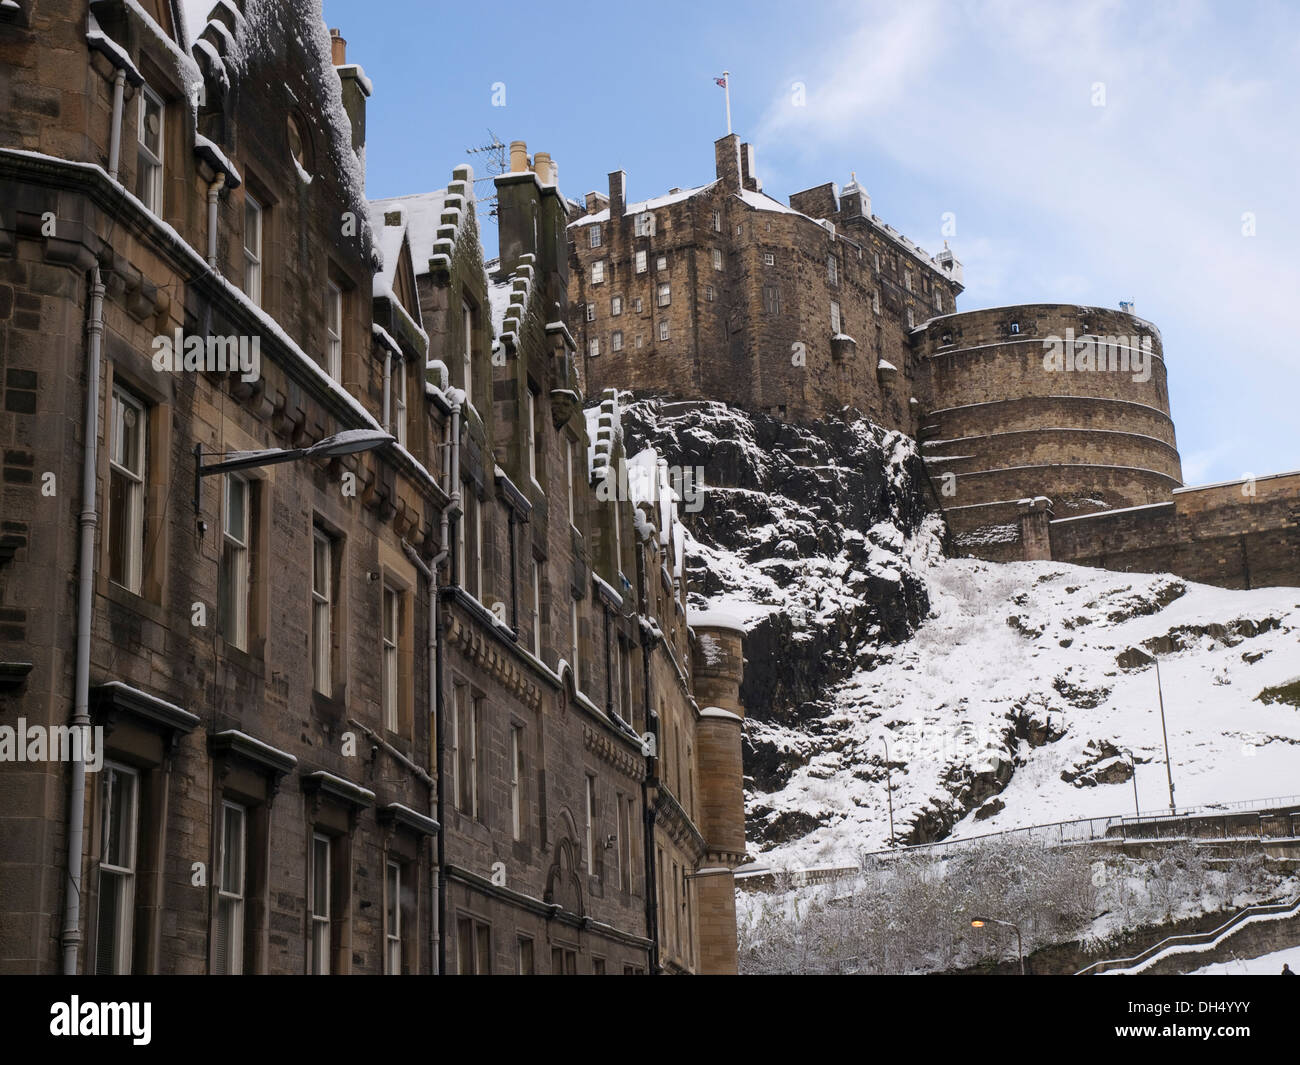 stock edinburgh castle - photo #1